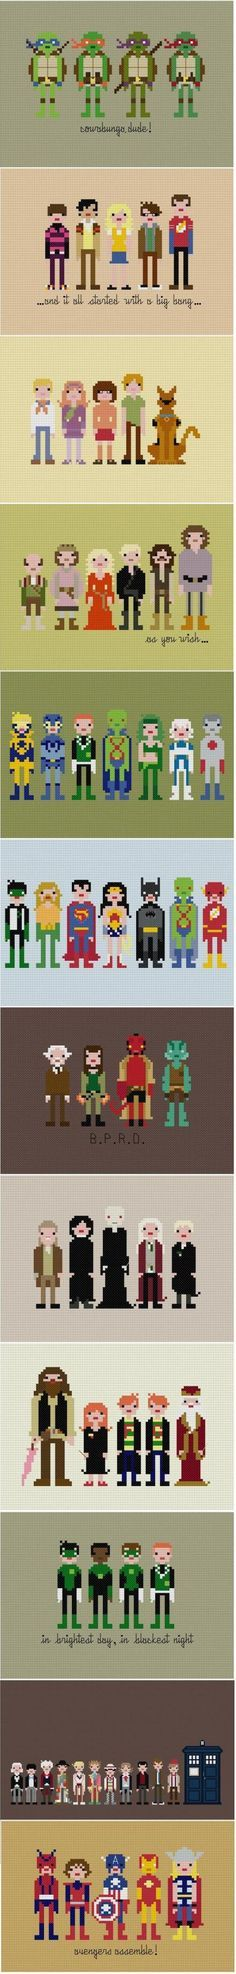 Hahaha - I haven't cross-stitched in YEARS, but I know people I would make these for!  Cross Stitch of various tv shows, movies and characters... fandom!